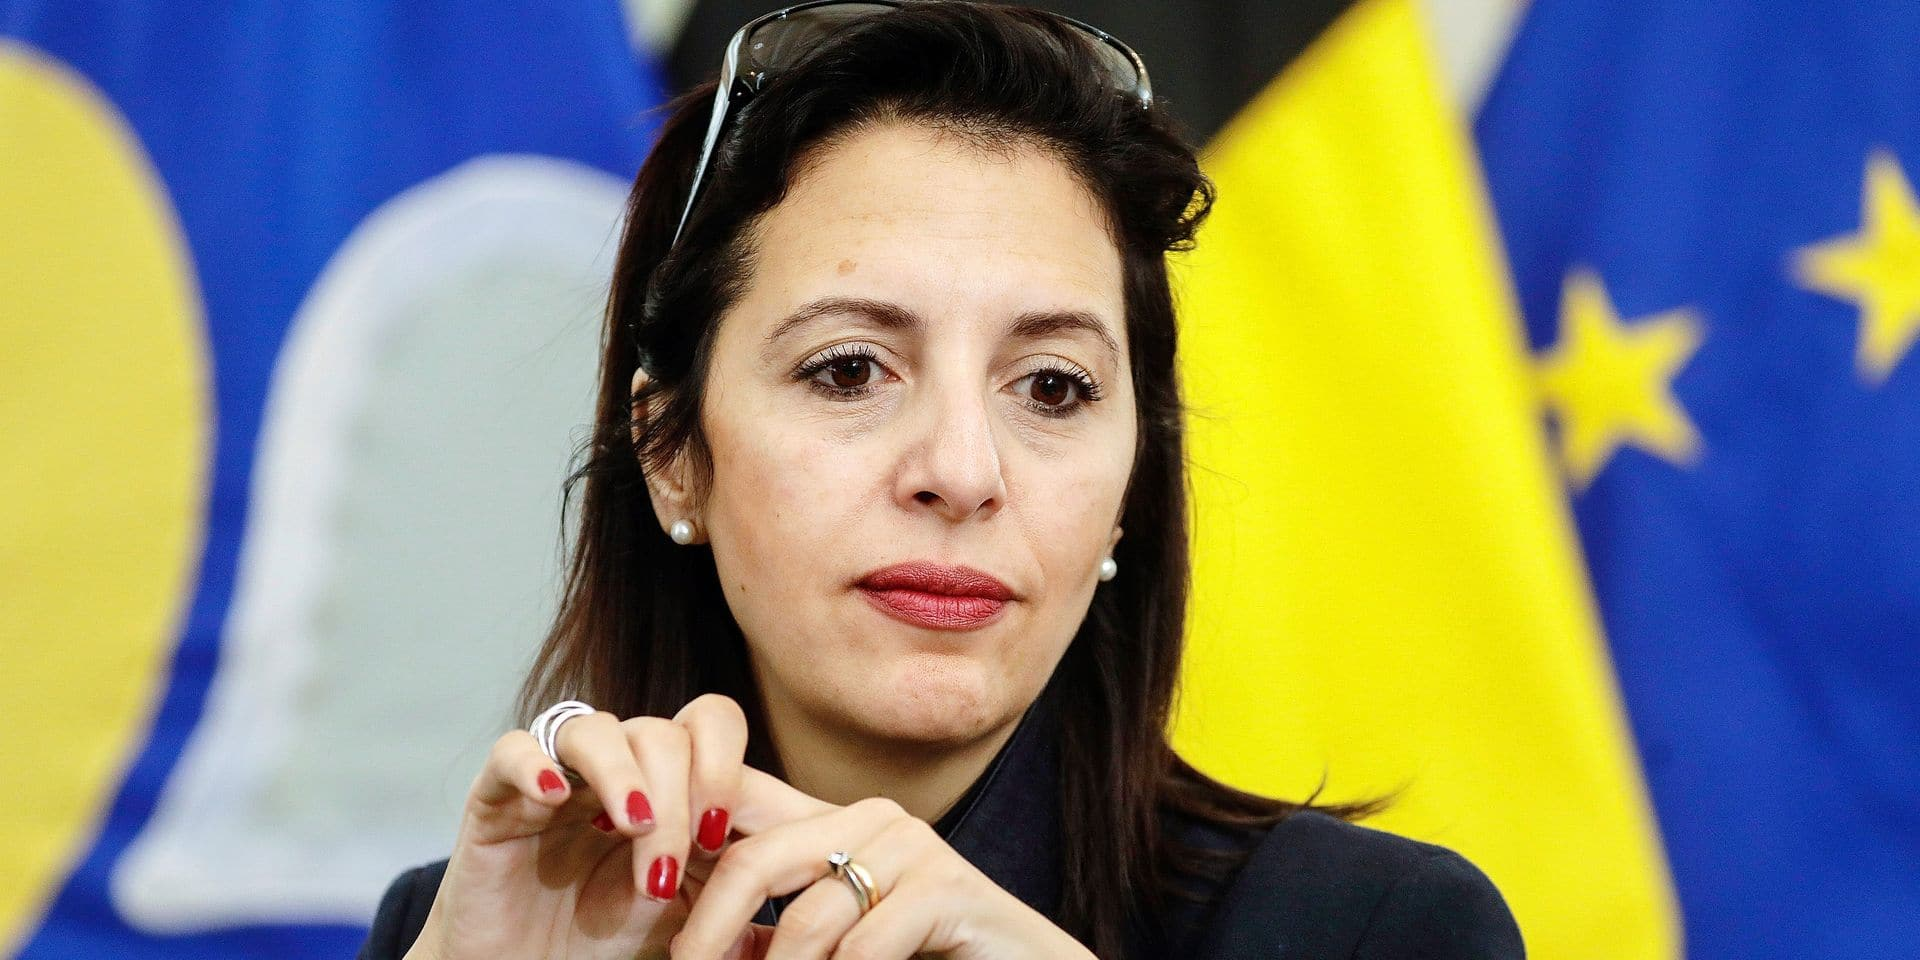 Ecolo's Zakia Khattabi pictured during a press conference to present the agreement to form a new brussels government, Wednesday 17 July 2019 in Brussels regional parliament. PS, Ecolo, DeFi, Groen, Open Vld and one.brussels-sp.a found a agreement in the night. BELGA PHOTO THIERRY ROGE negotiations